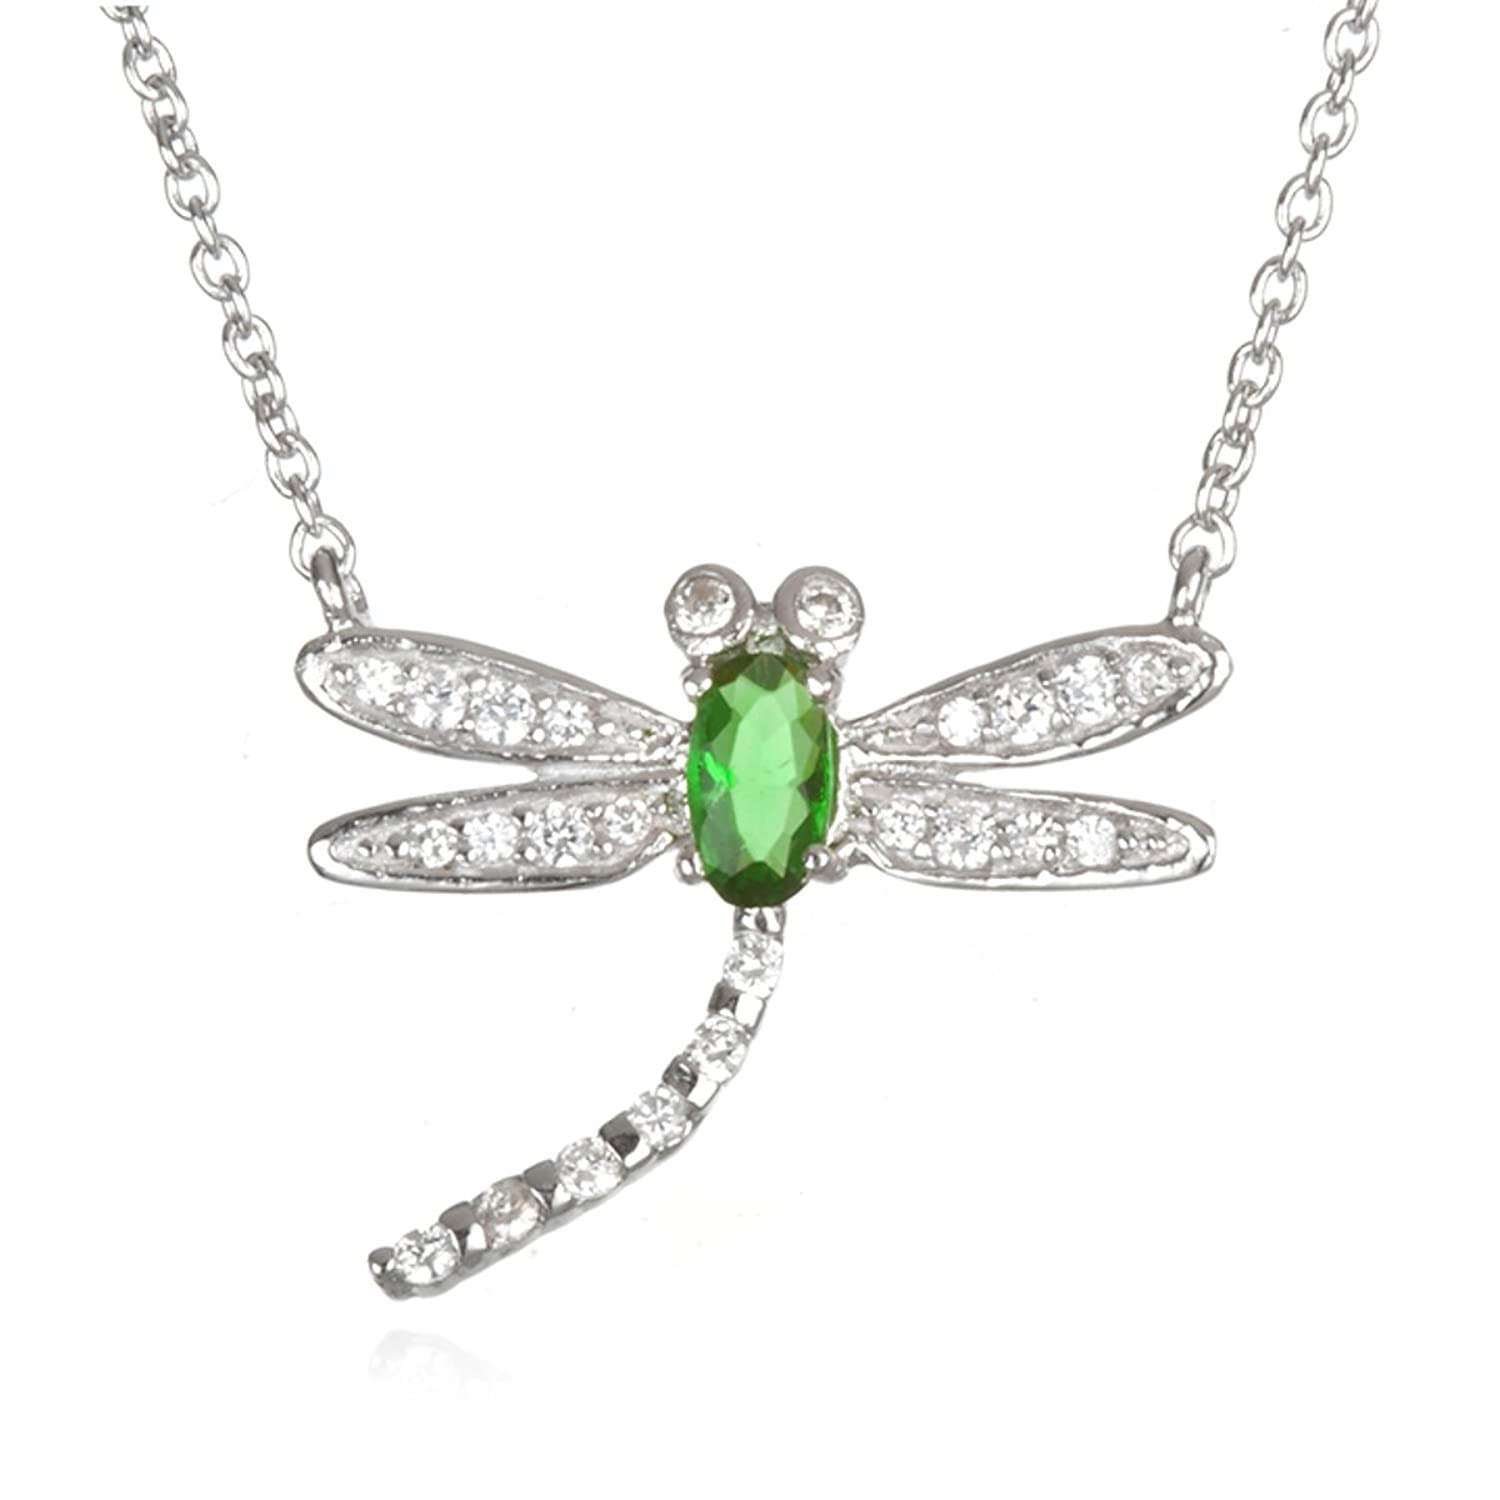 Mini Dragonfly Pendant with Cubic Zirconia Body in Green or White Color -18